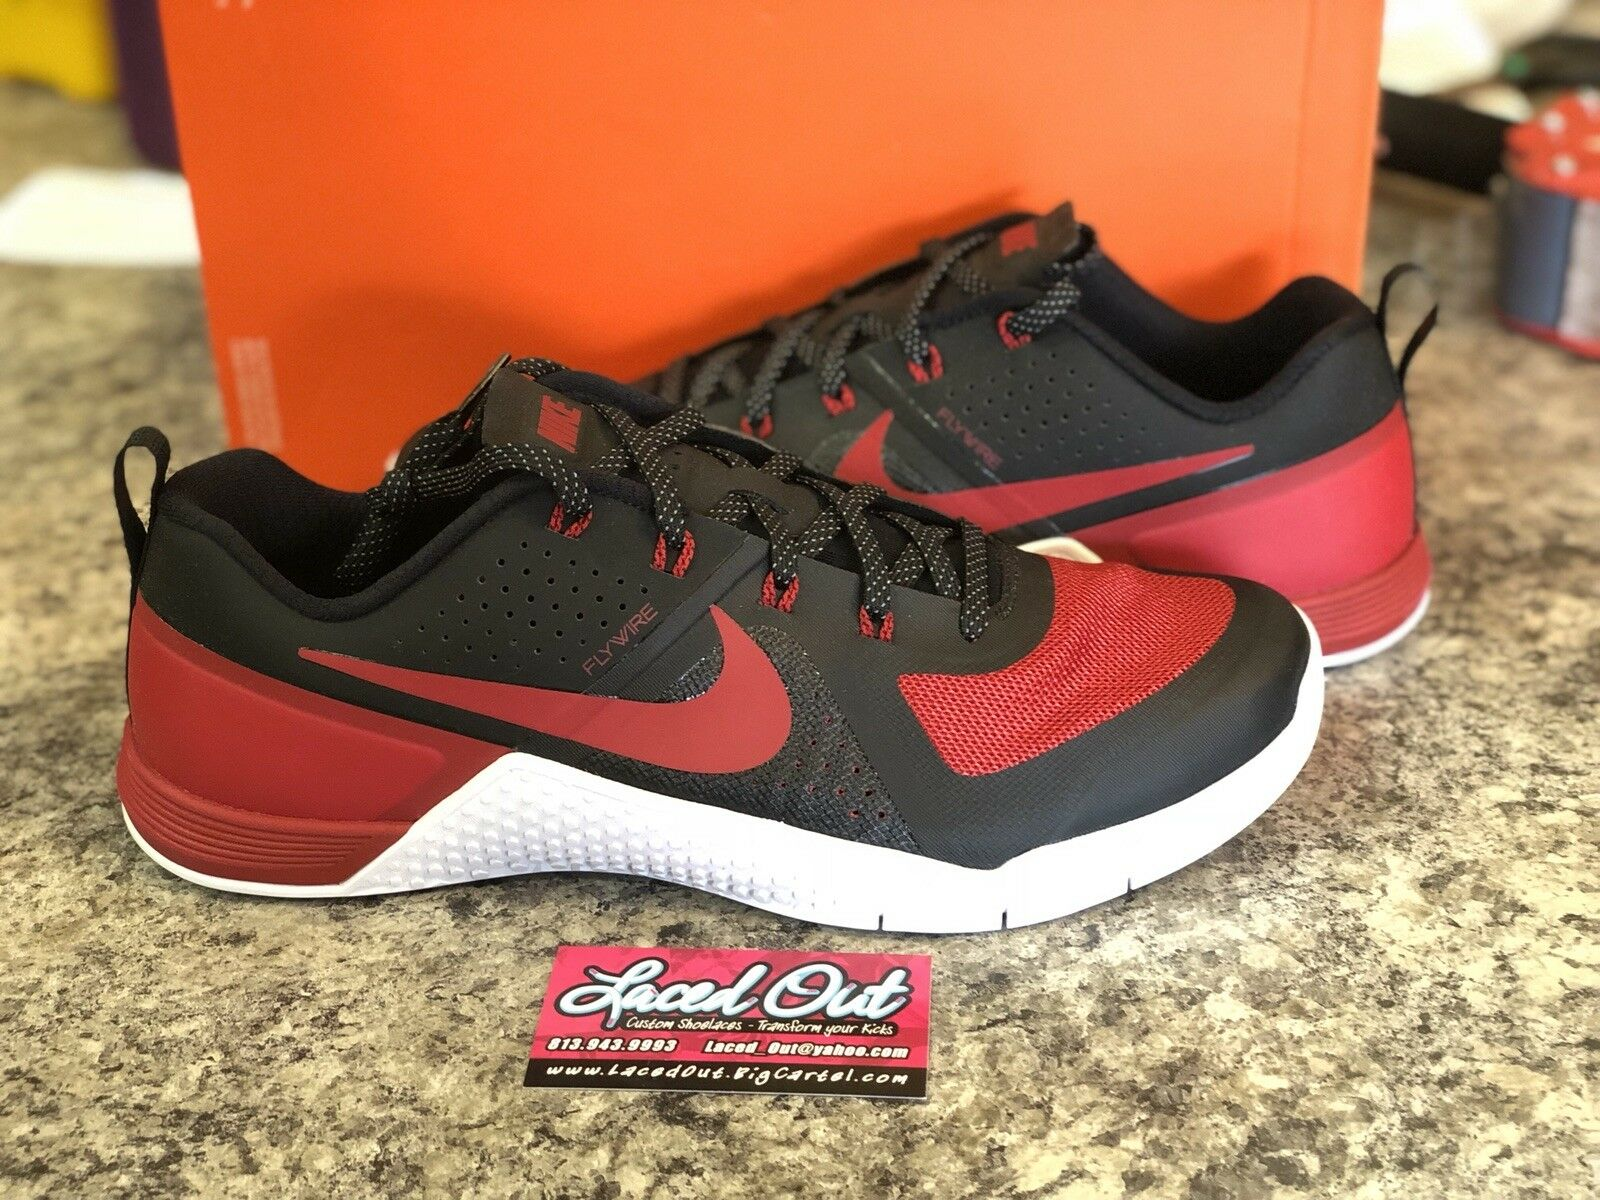 DS Nike Metcon 1 BANNED Black/White/Varsity Red 822224-061 sz 11 CrossFit train